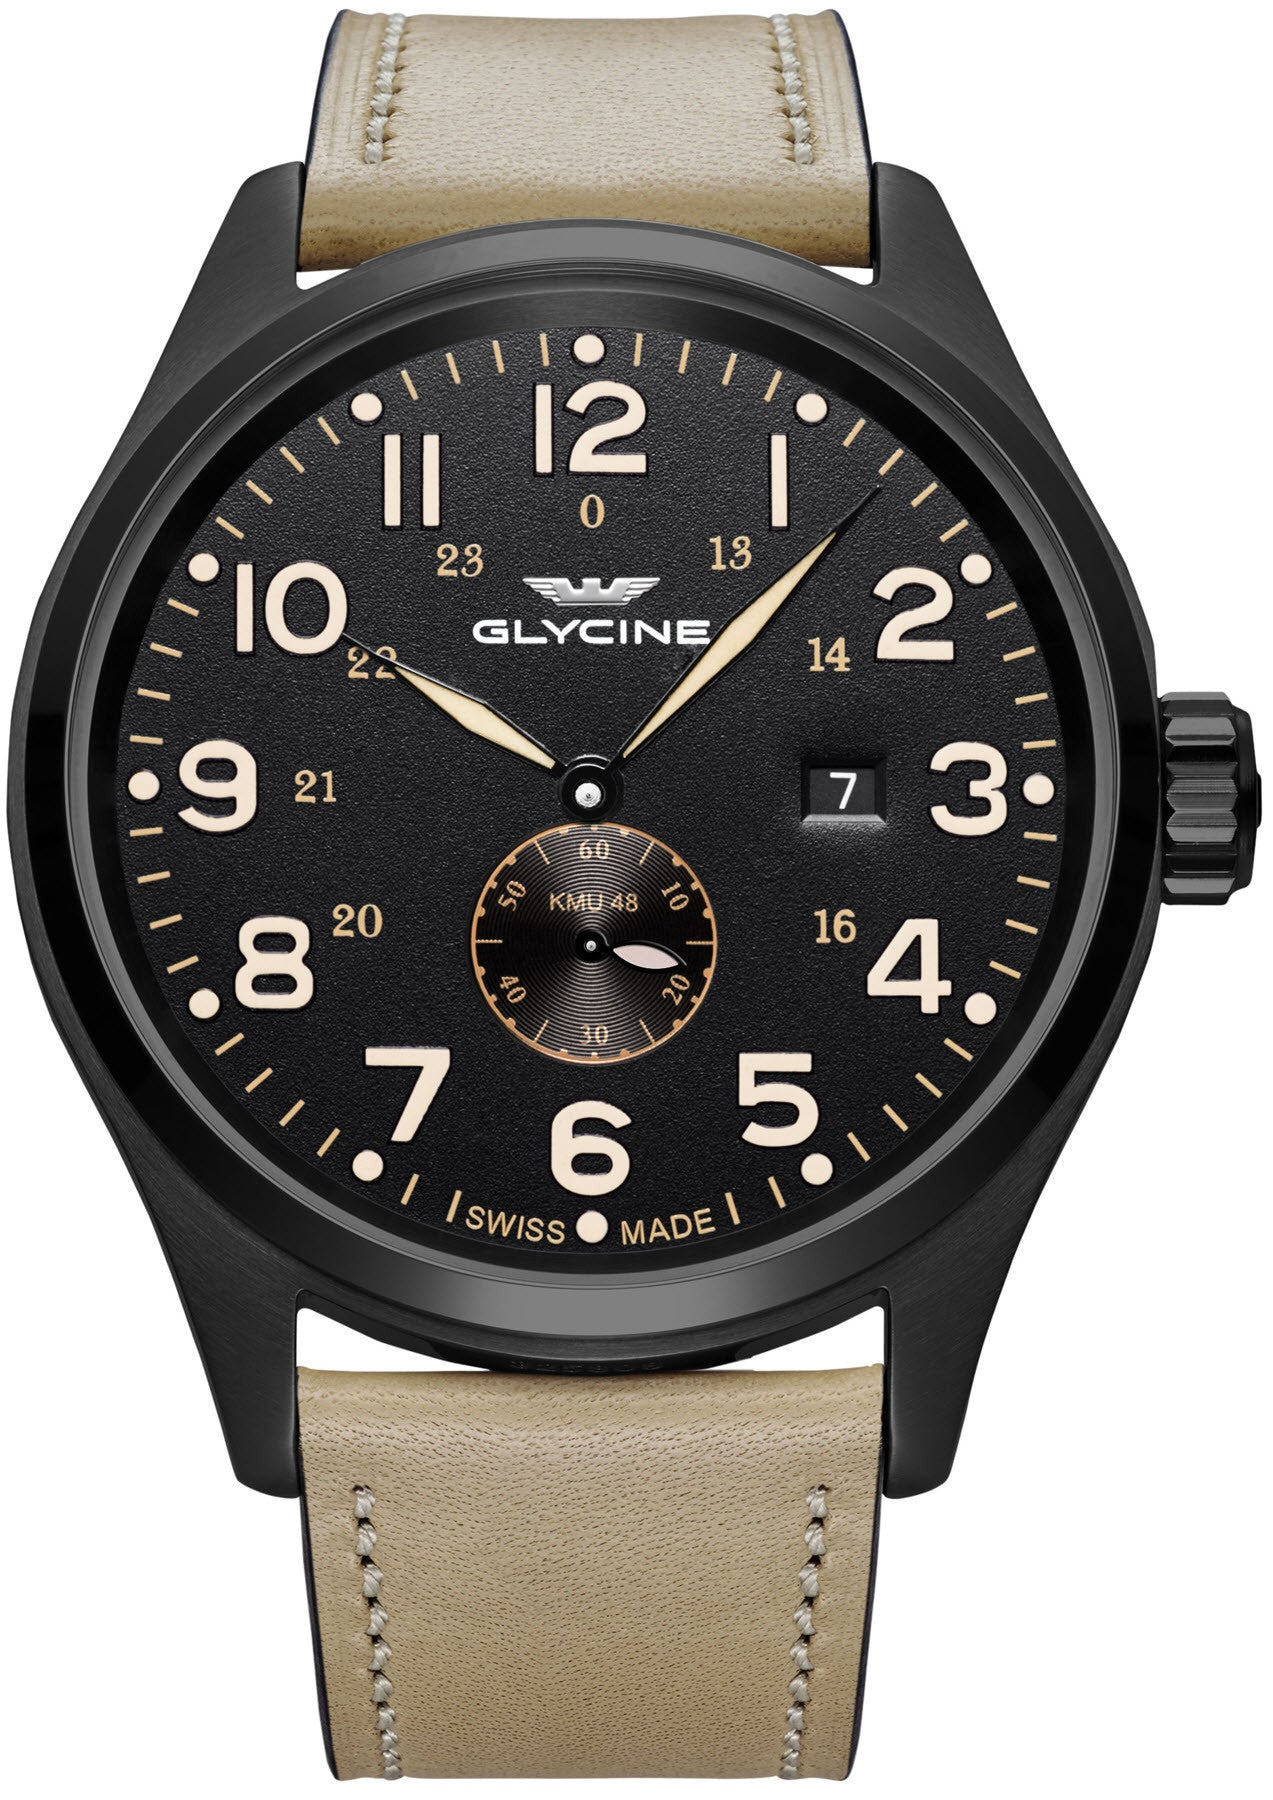 glycine watch kmu